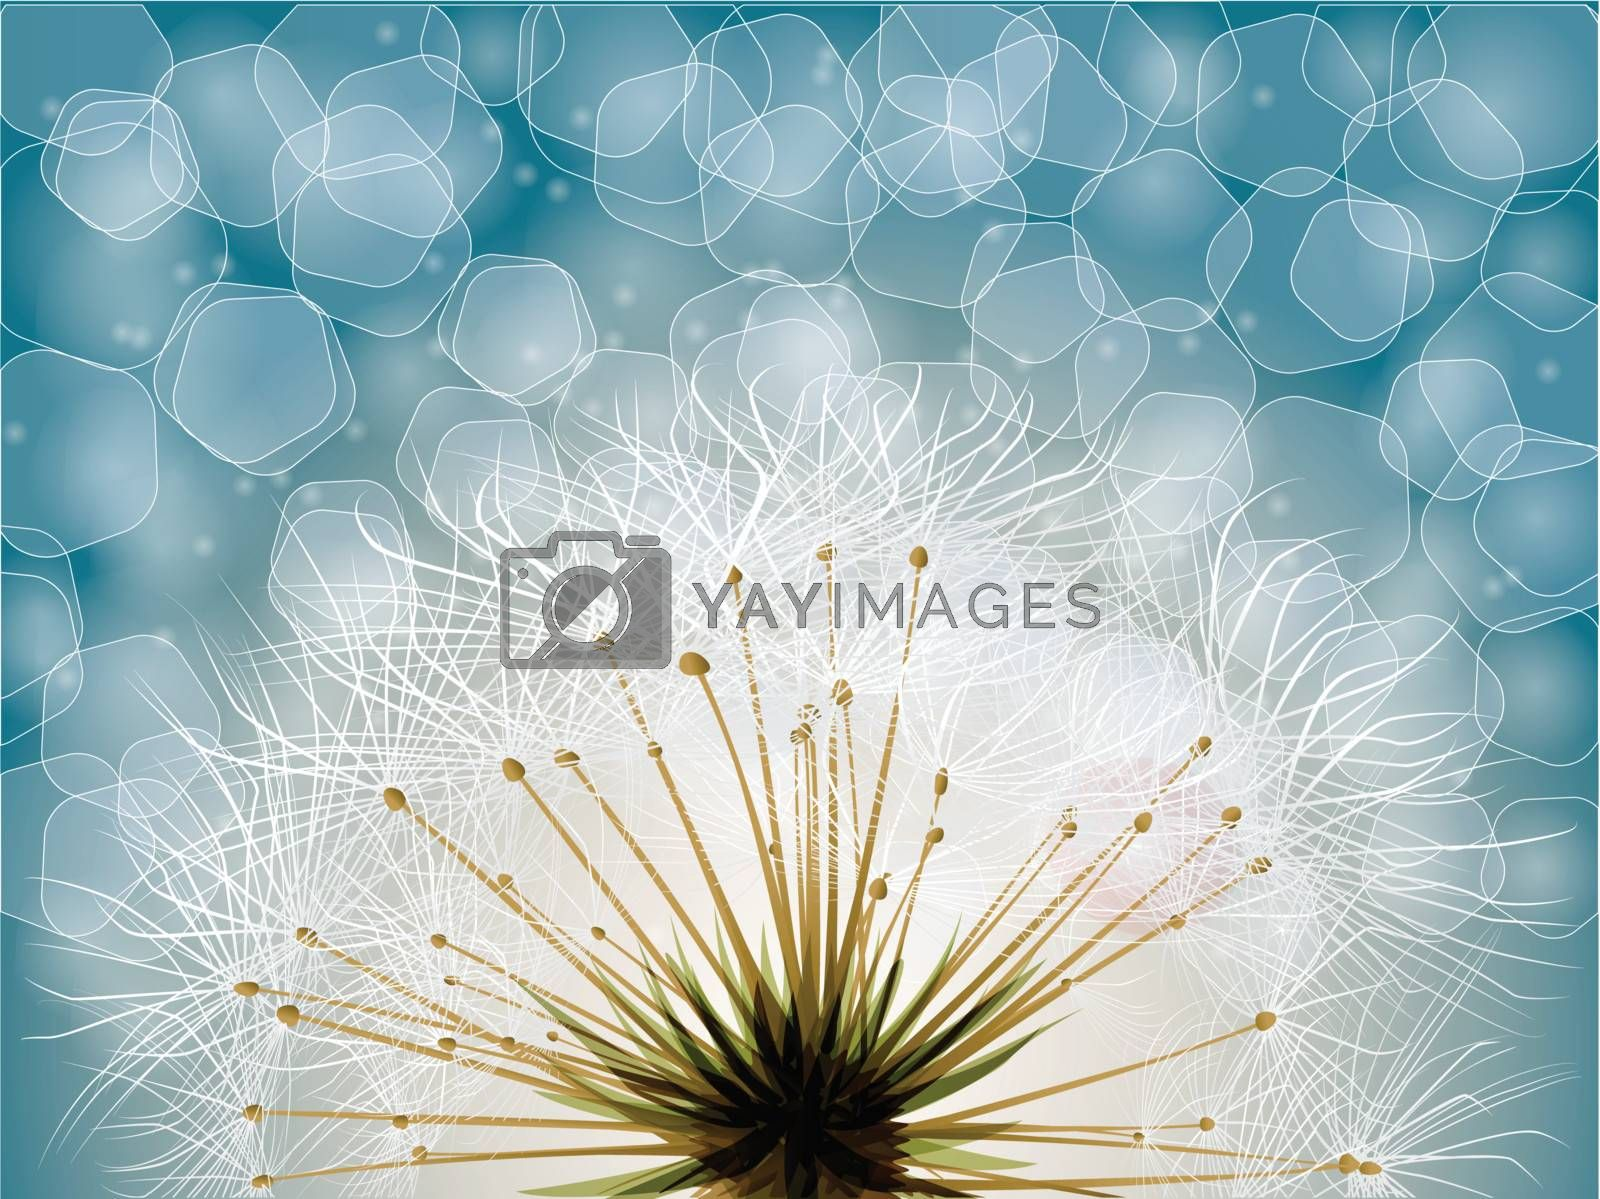 Royalty free image of Extreme macro shot of fluffy dandelion seeds by nirots